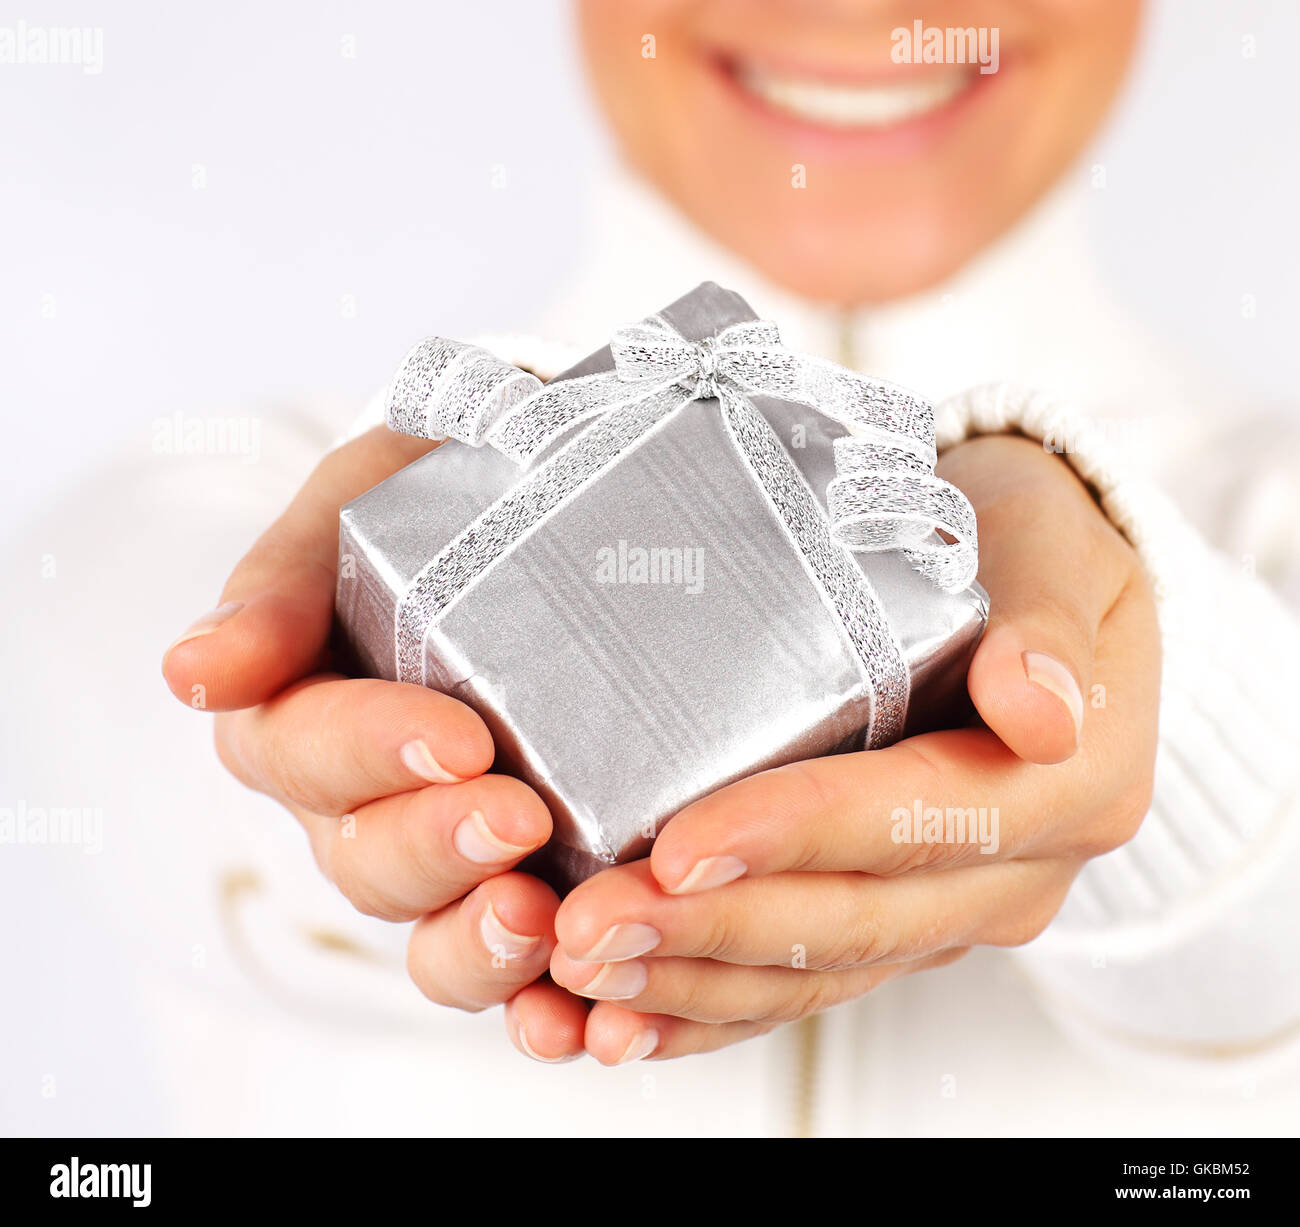 Humans Body Parts Stock Photos Humans Body Parts Stock Images Alamy